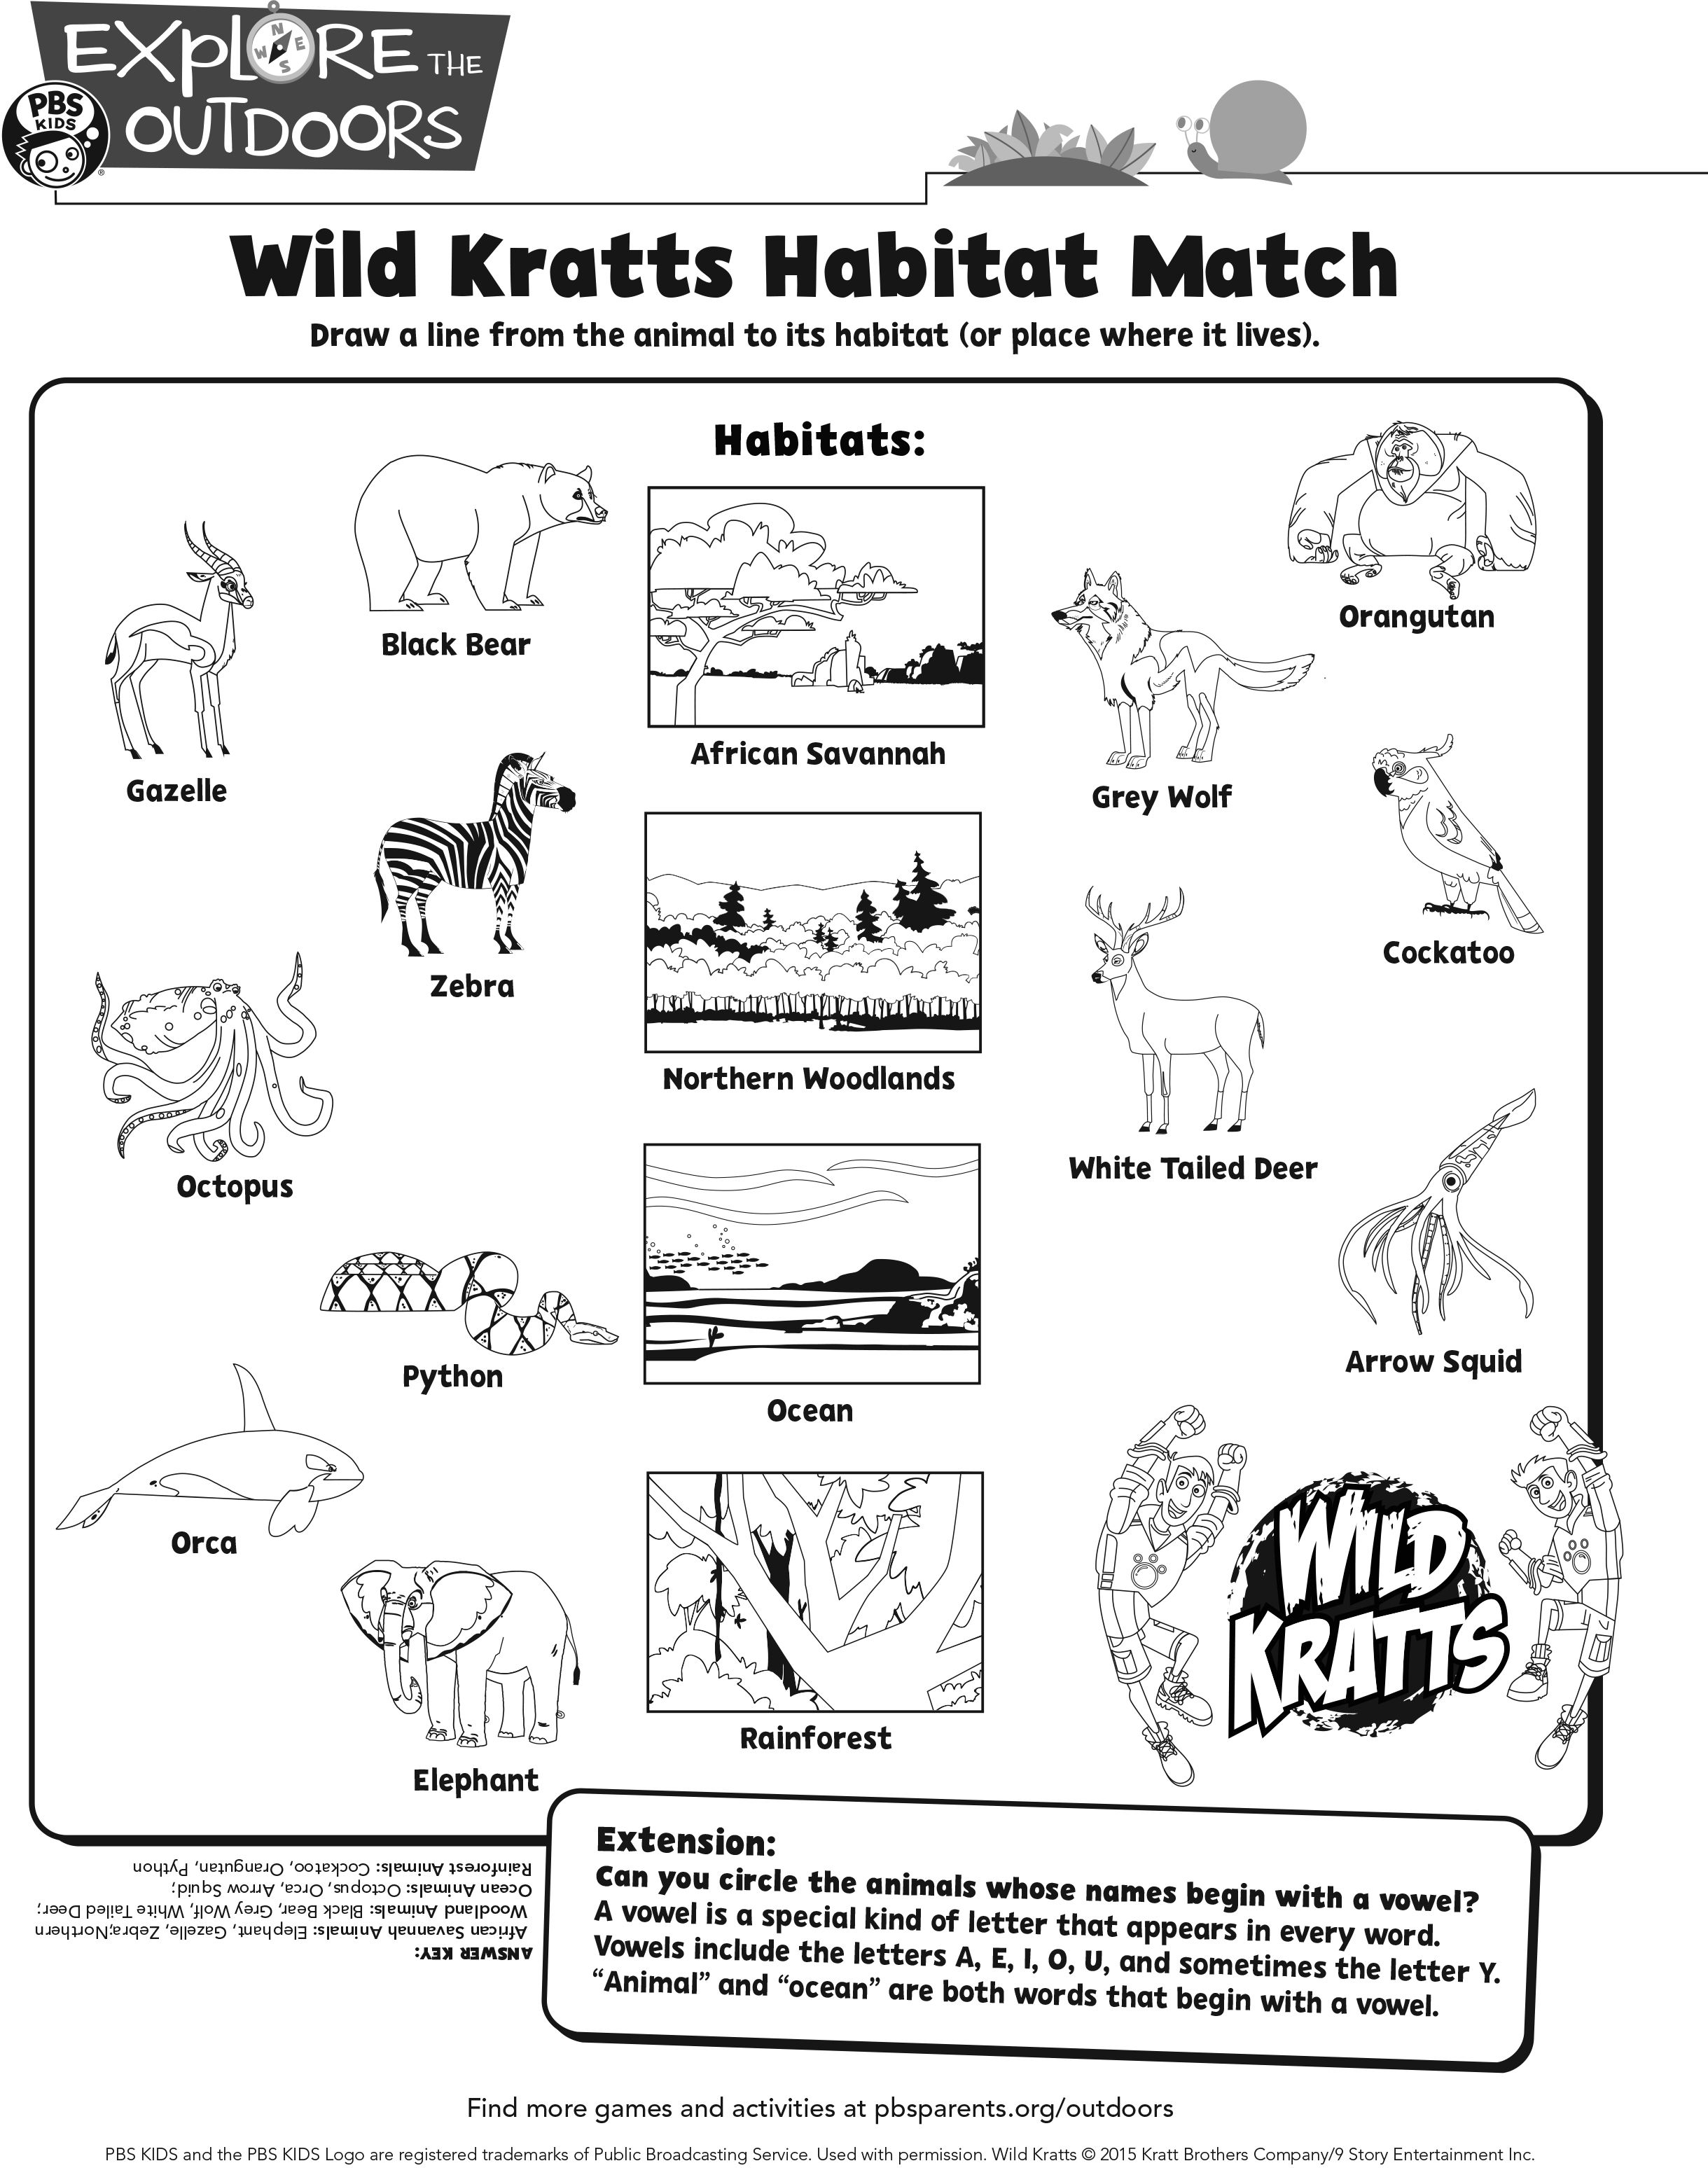 Match The Animals To Their Habitat In This Wild Kratts